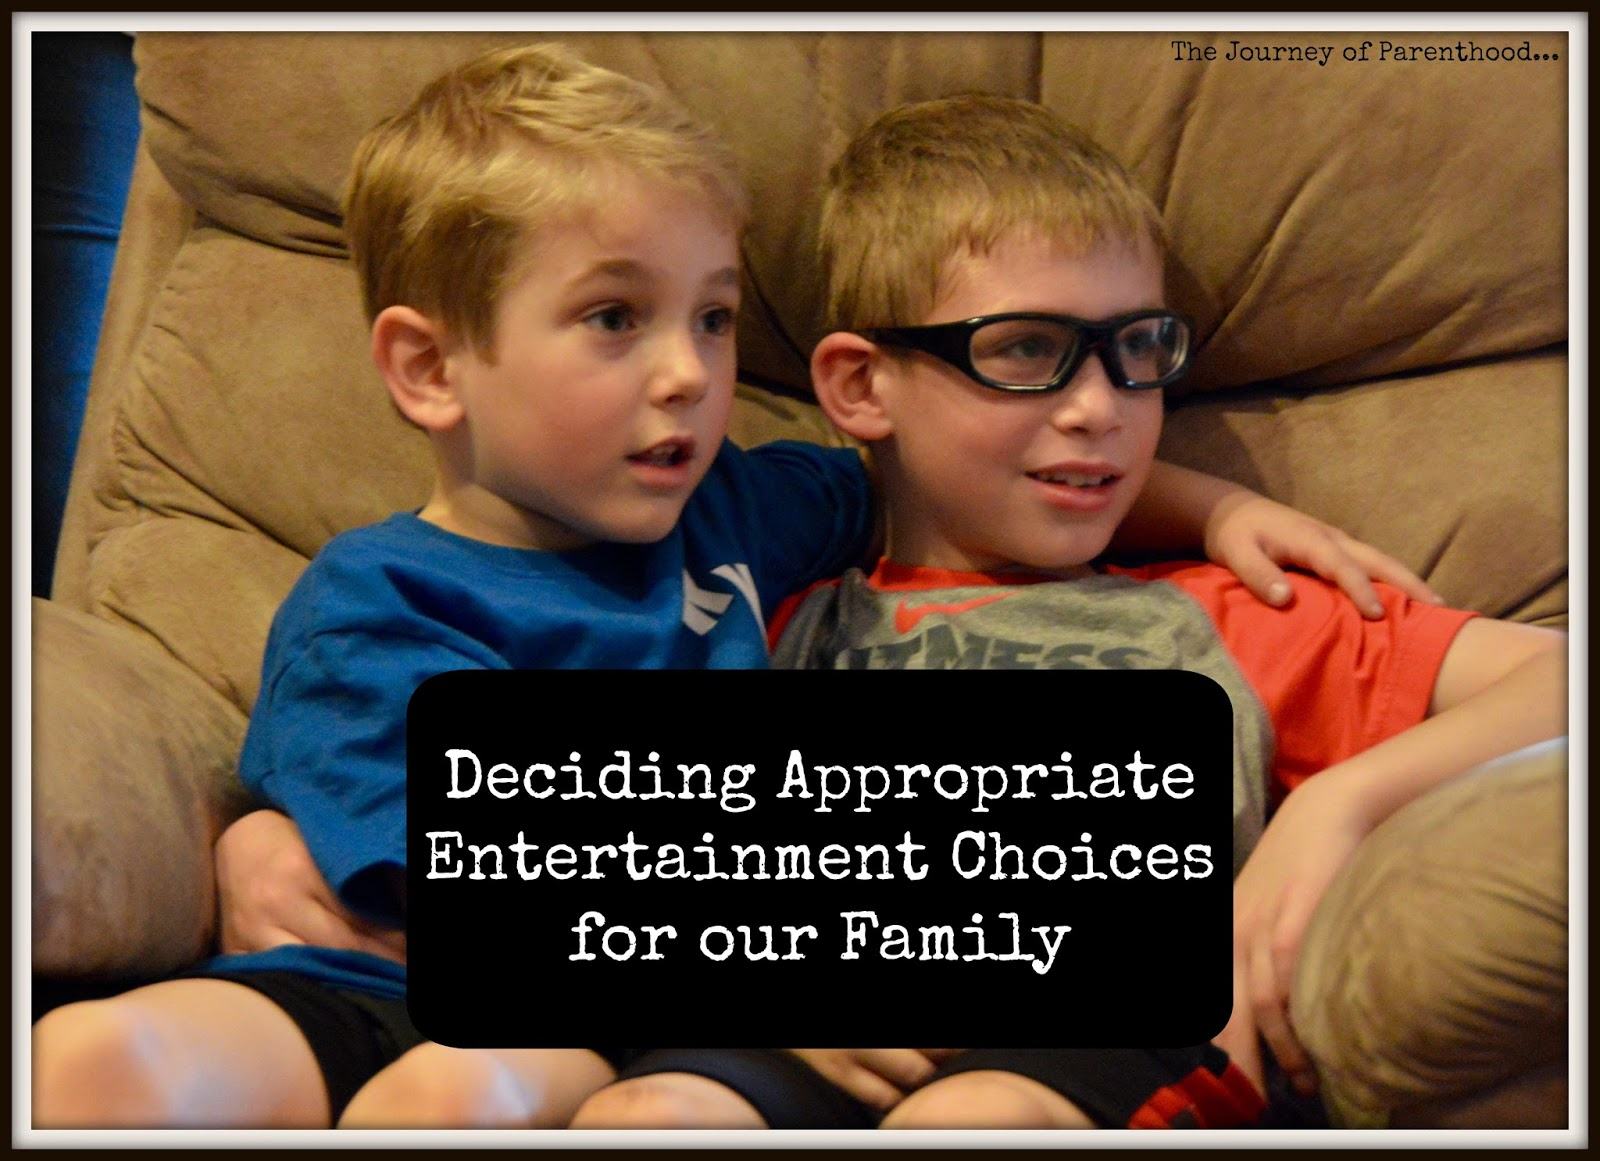 Deciding Appropriate Entertainment Choices for Our Family